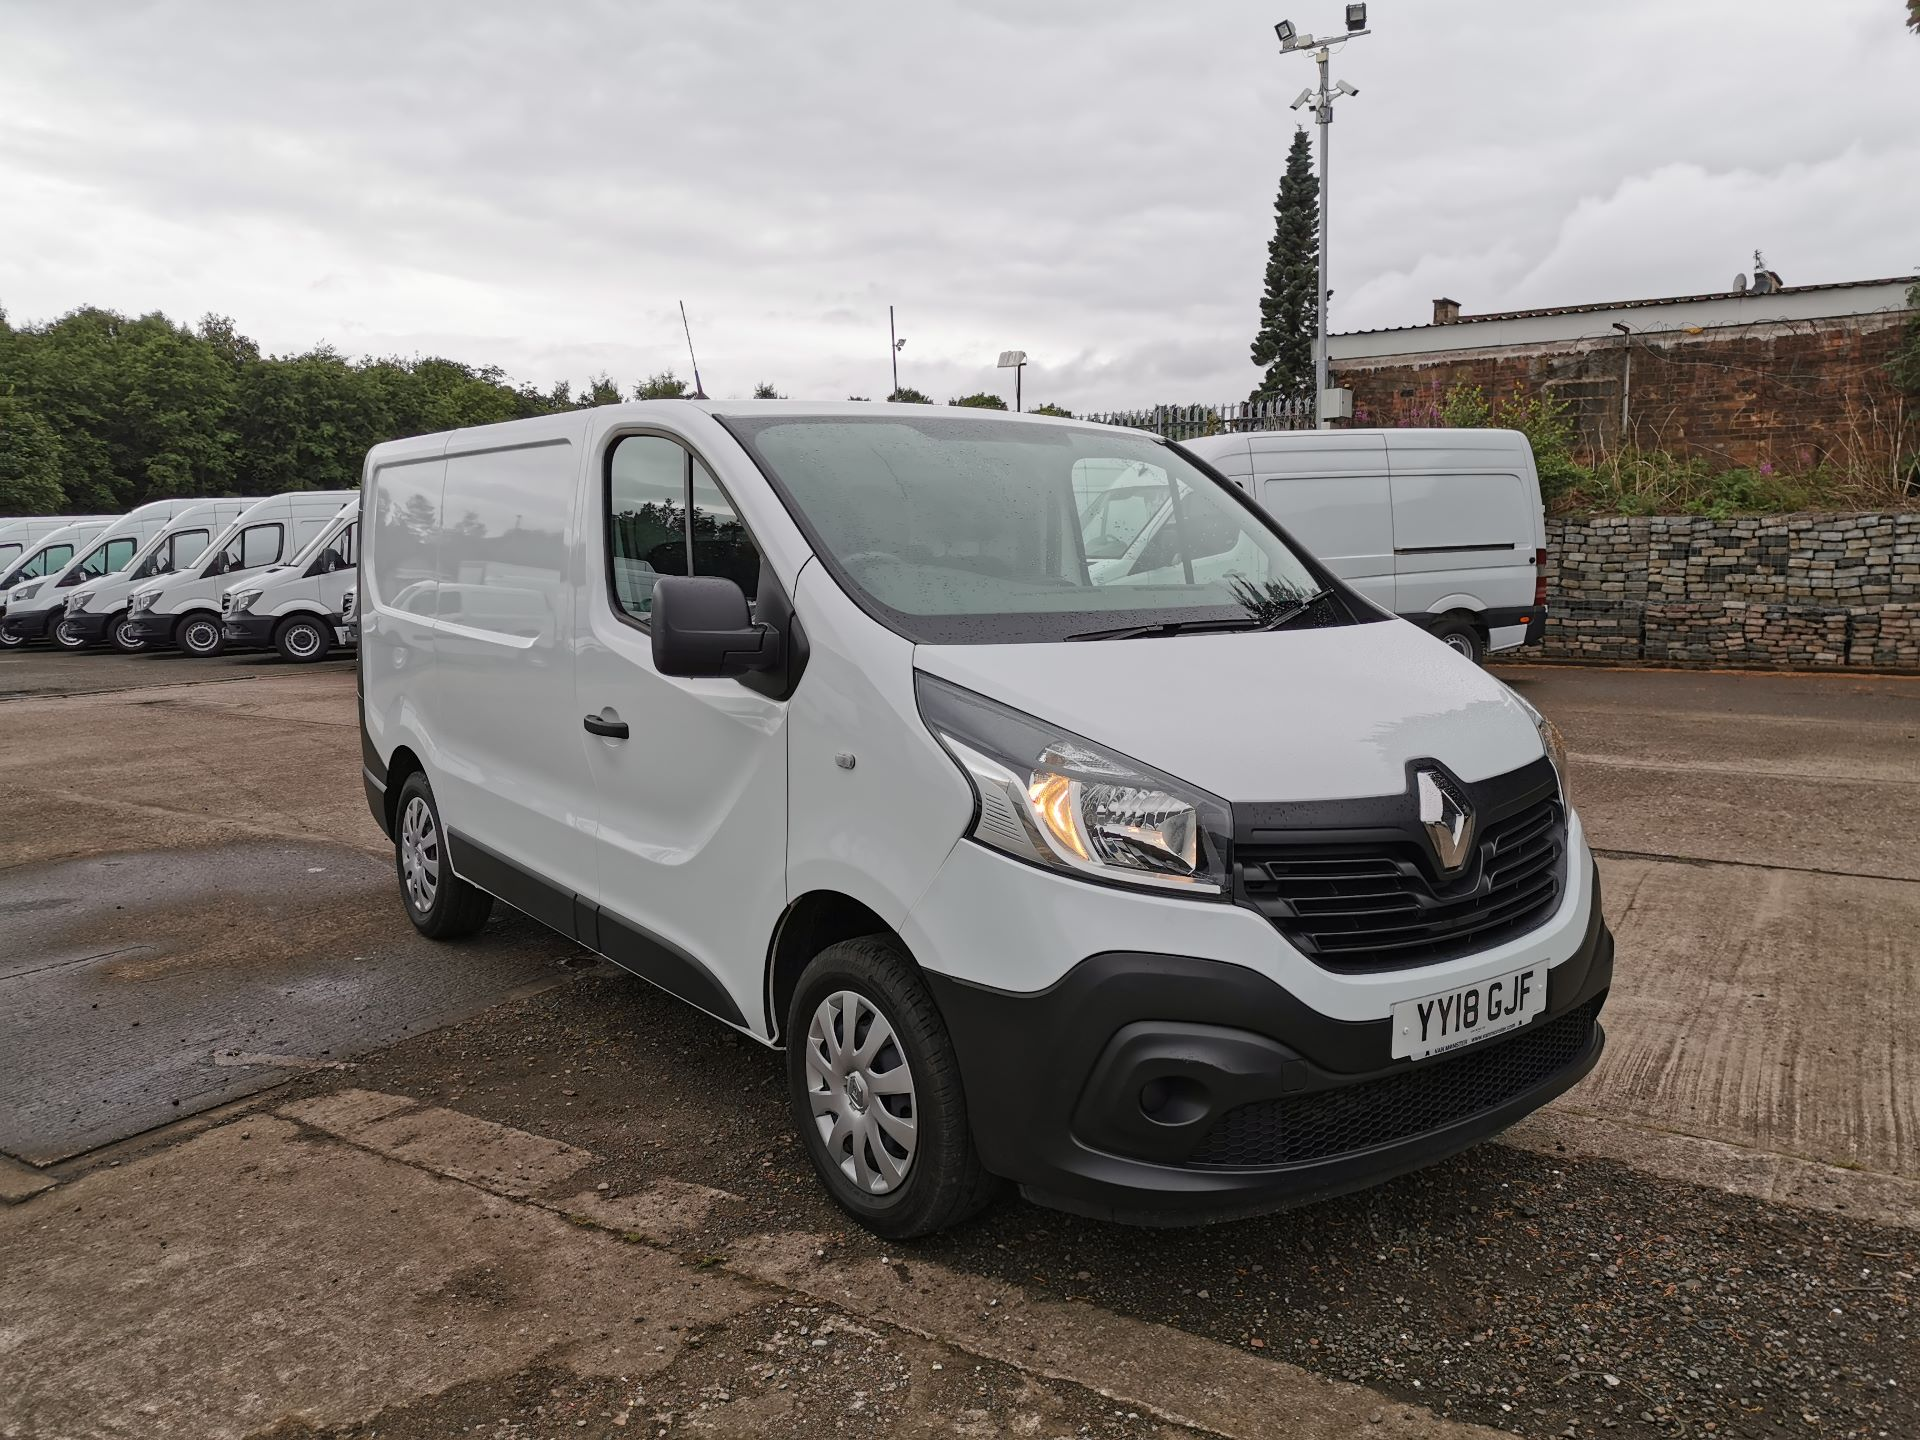 2018 Renault Trafic SL27 1.6 ENERGY DCI 125PS BUSINESS EURO 6 (YY18GJF)